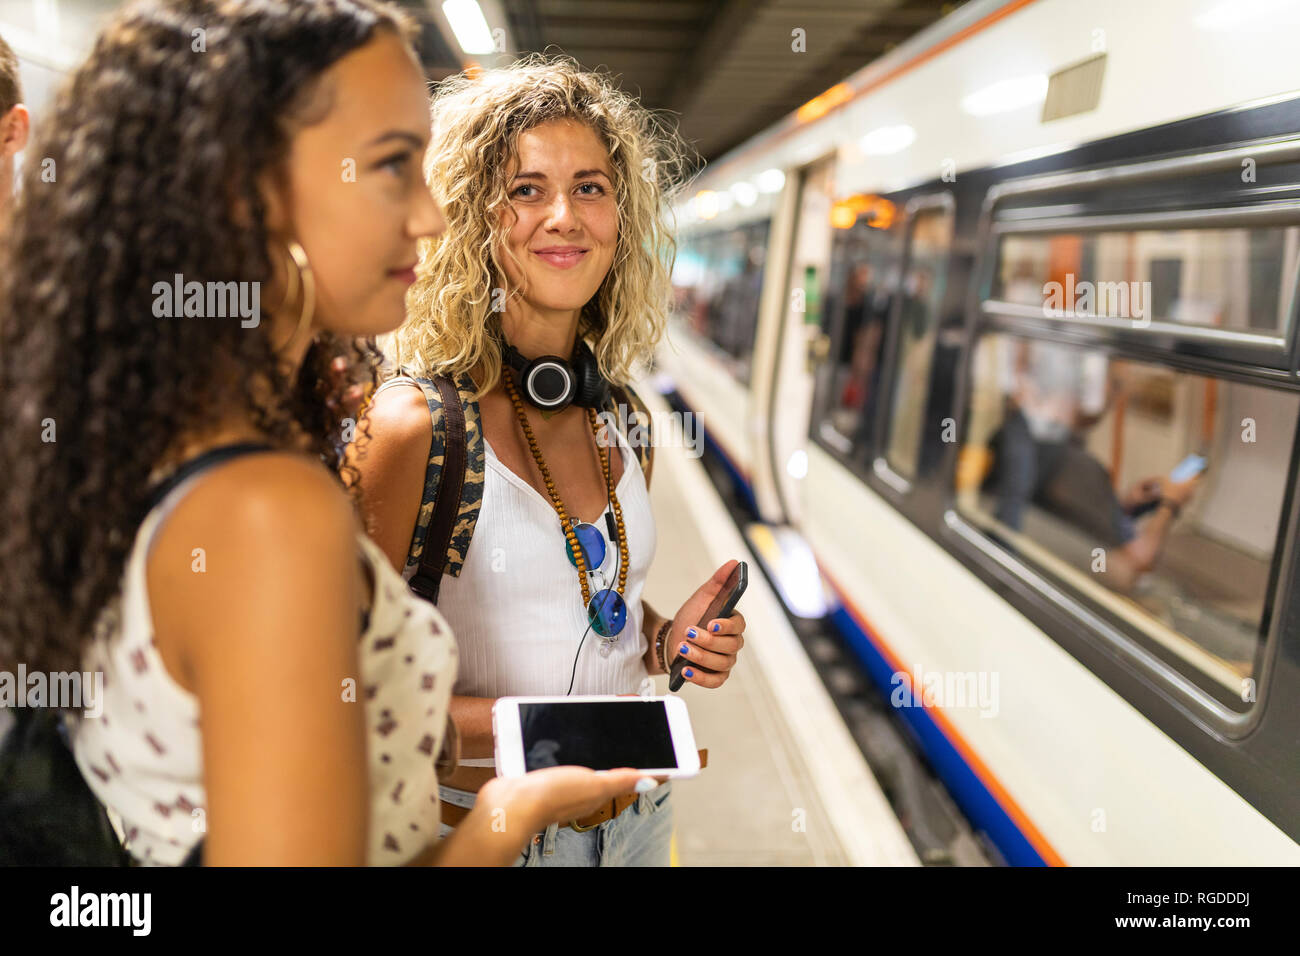 UK, London, two young women with cell phones waiting at underground station platform - Stock Image